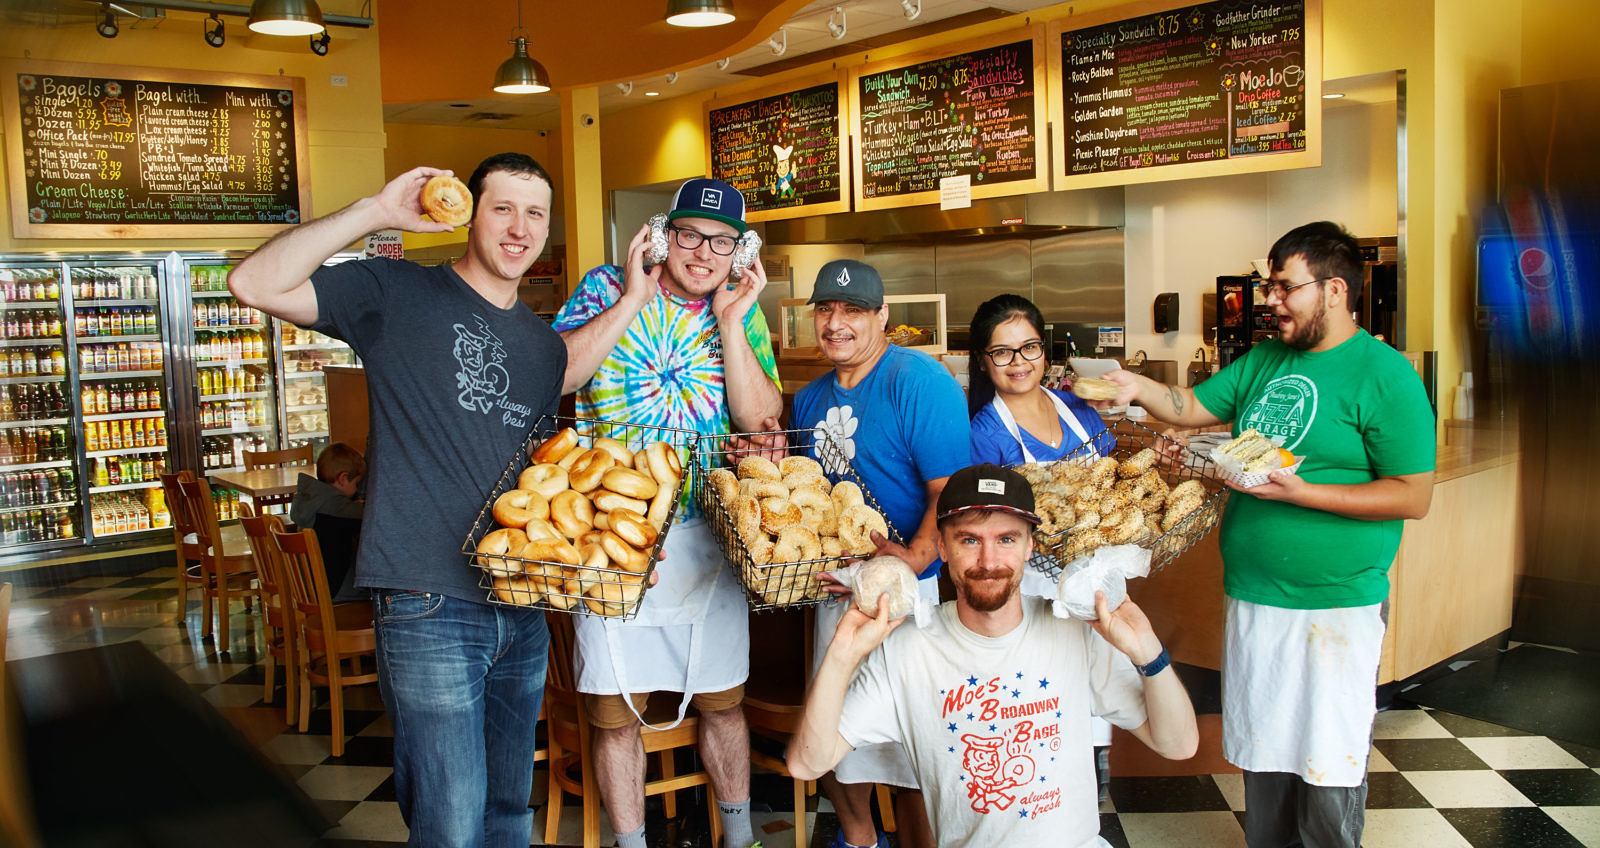 Featured Business: Moe's Broadway Bagel